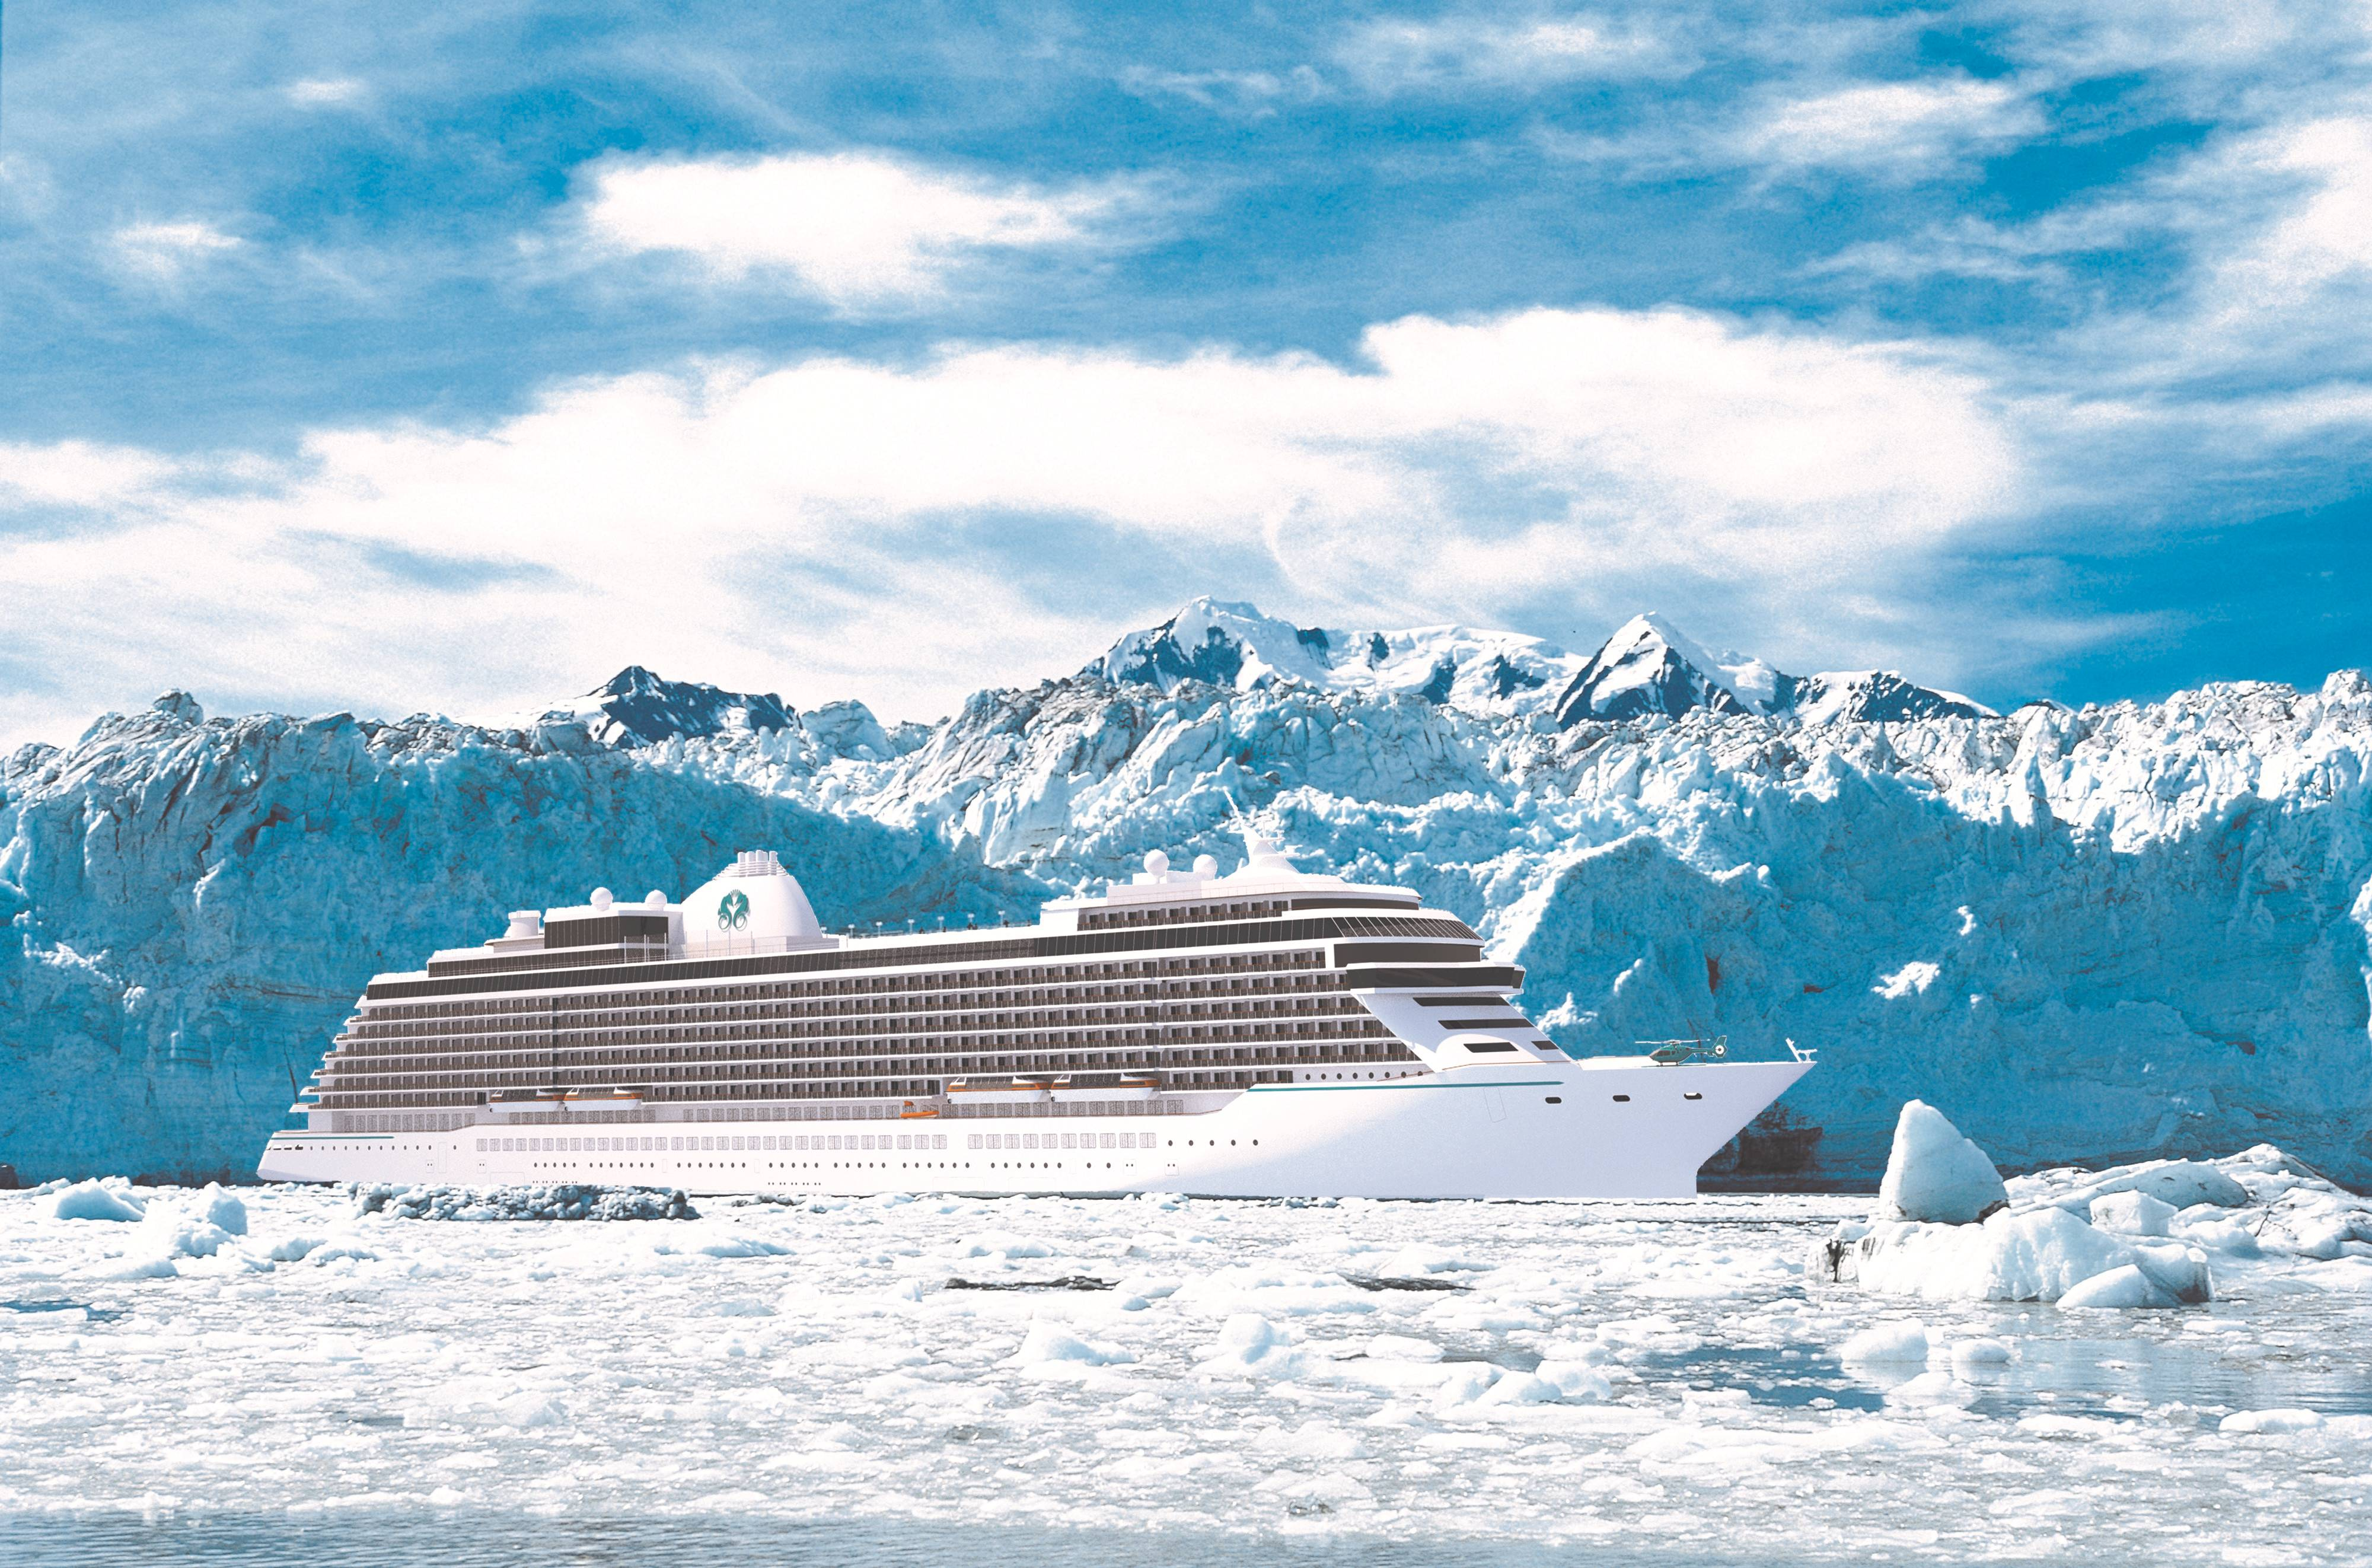 Electric Marine Propulsion Drive System Just Another Wiring Hydpowsysfigure1 Hydraulic Power Systems And Controls Abb Powers Crystal Cruises Exclusive Class Ships China Ship